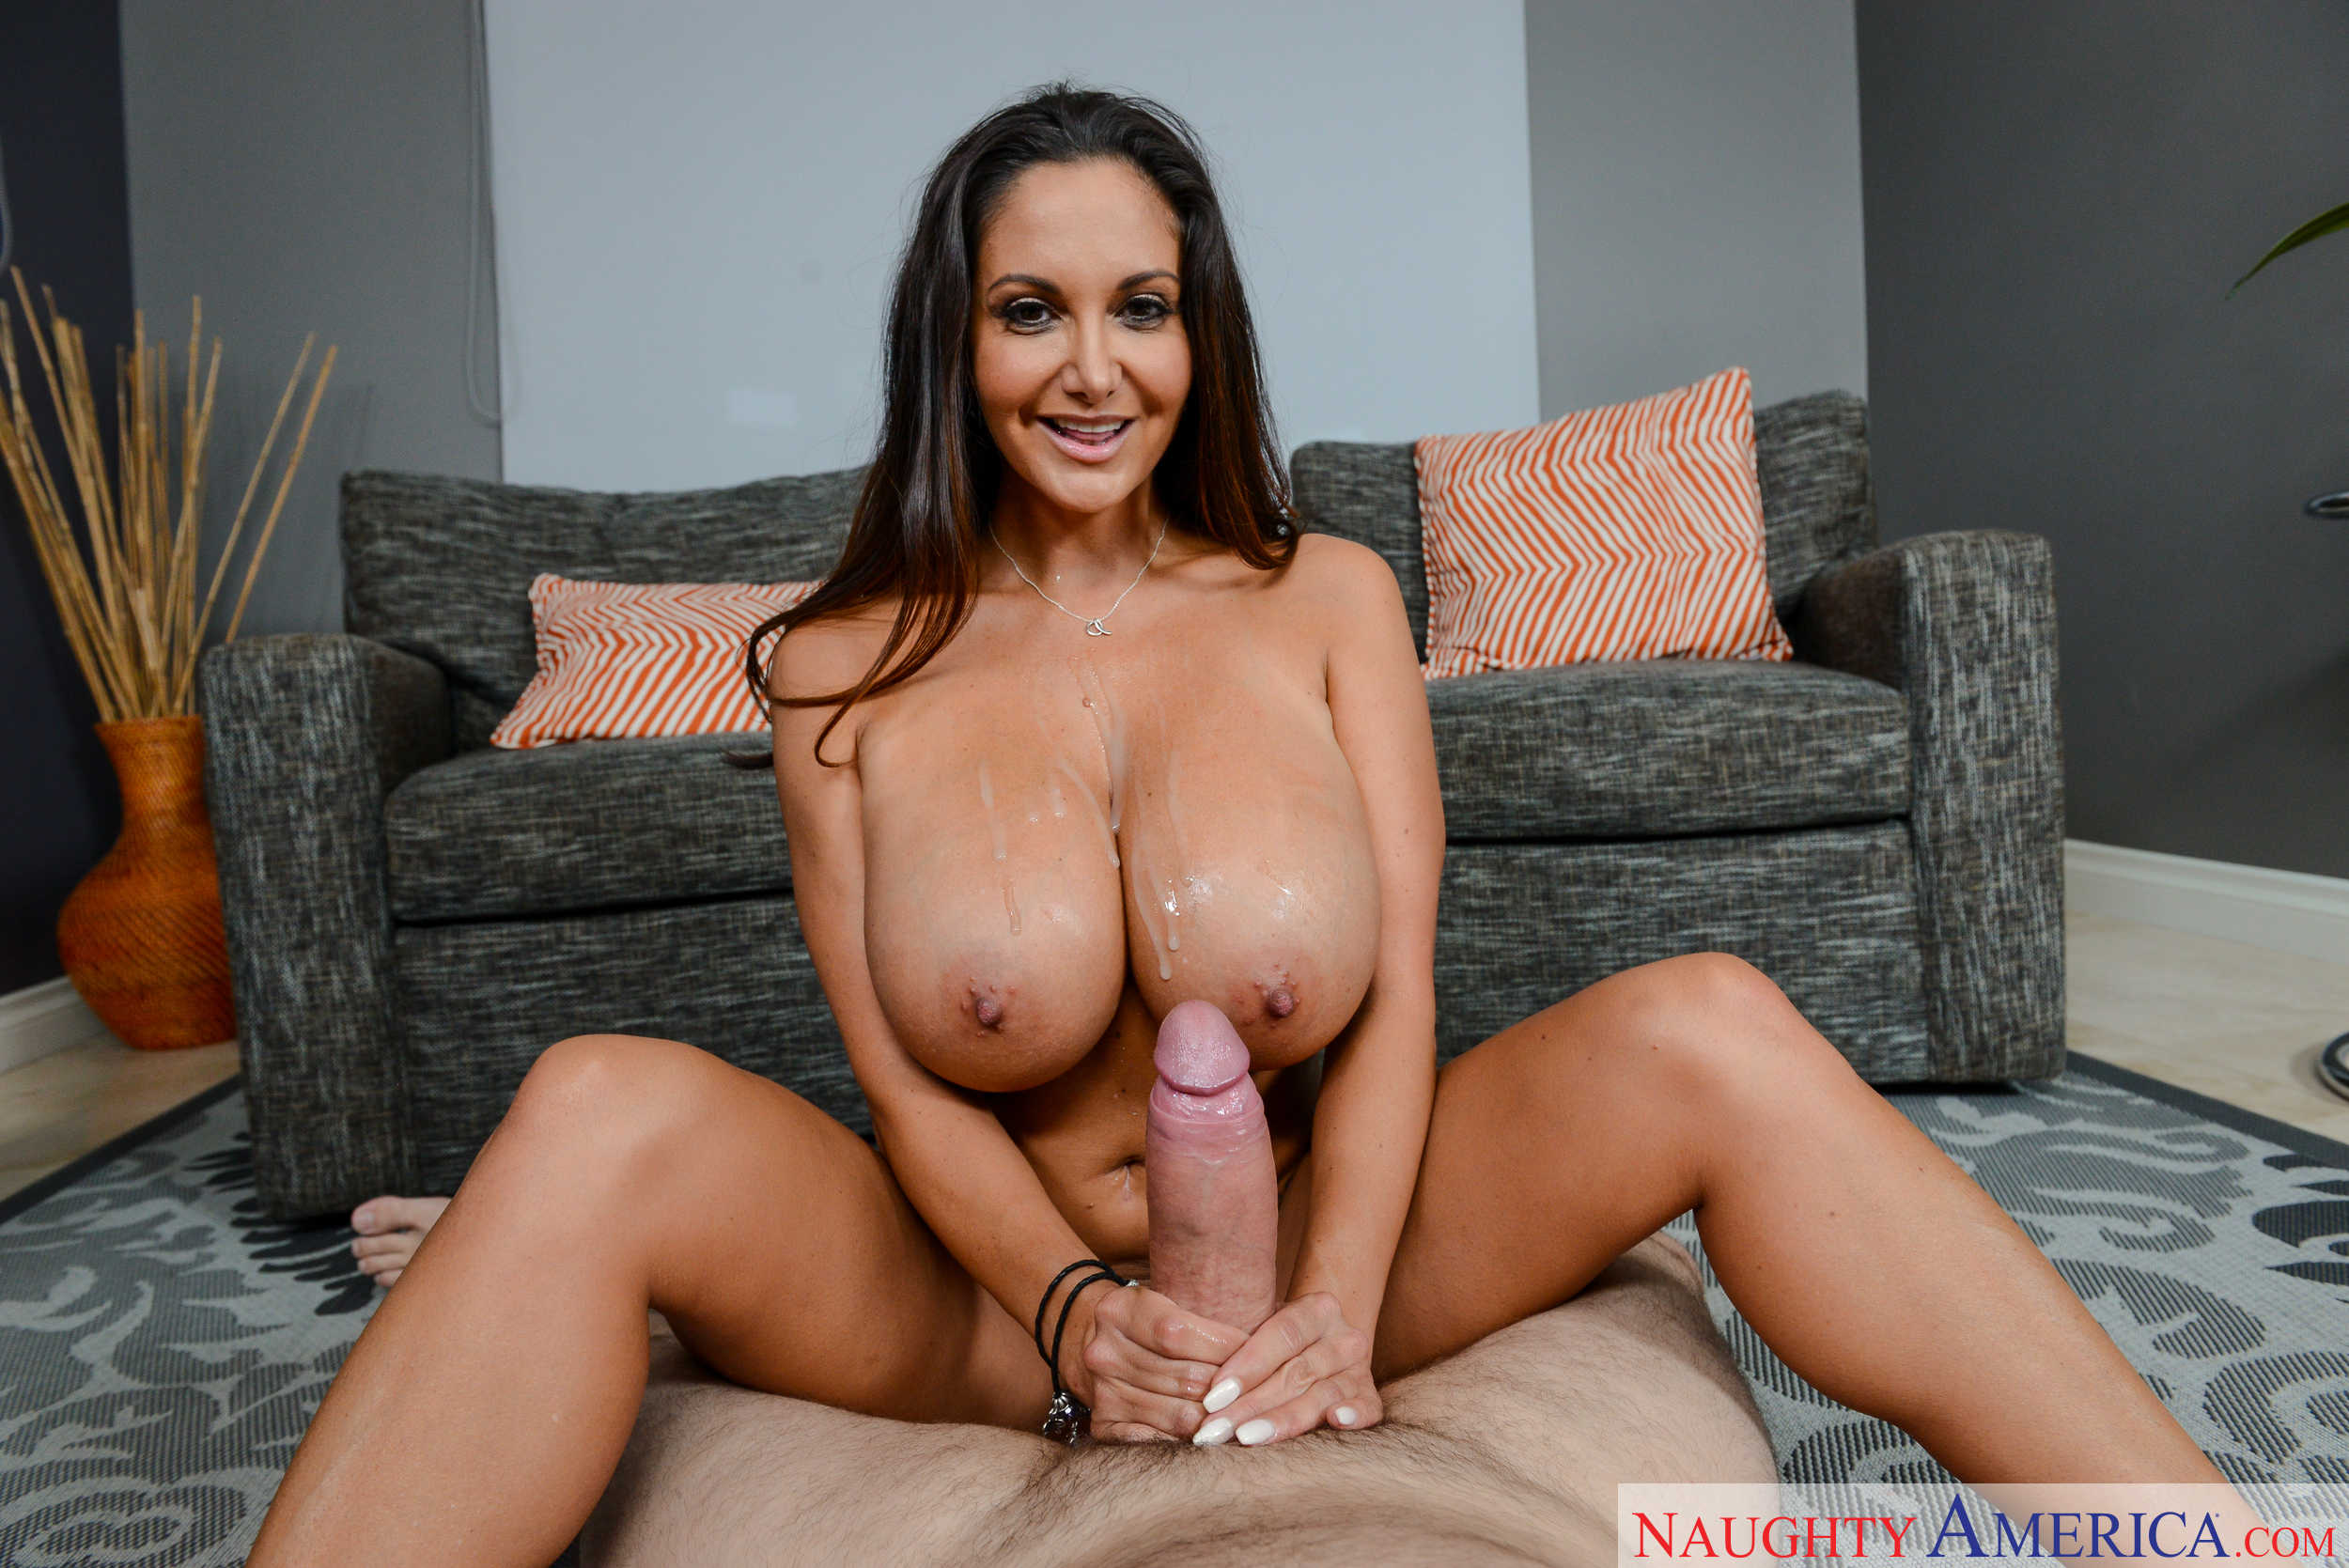 Megan foxx gets her pussy stretched by monster cock - 2 part 8